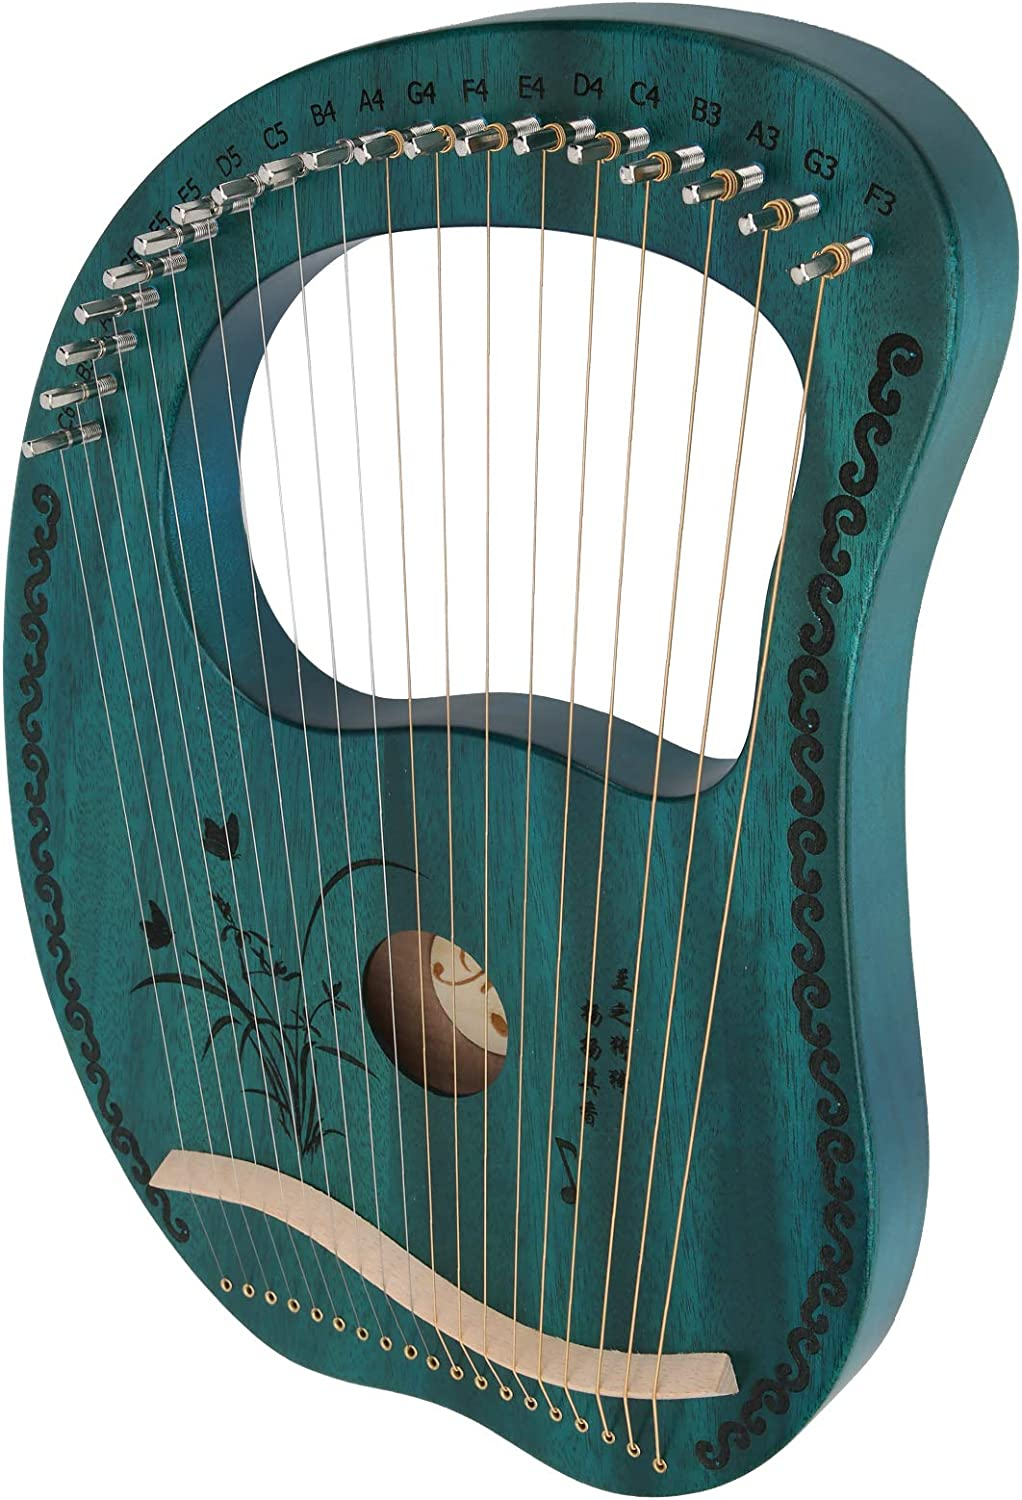 Mahogany Harp 16‑String 16‑Tone Tunable Lyre with Tuning Wrench Portable Musical Instrument Cristmas Birthday Present Gifts